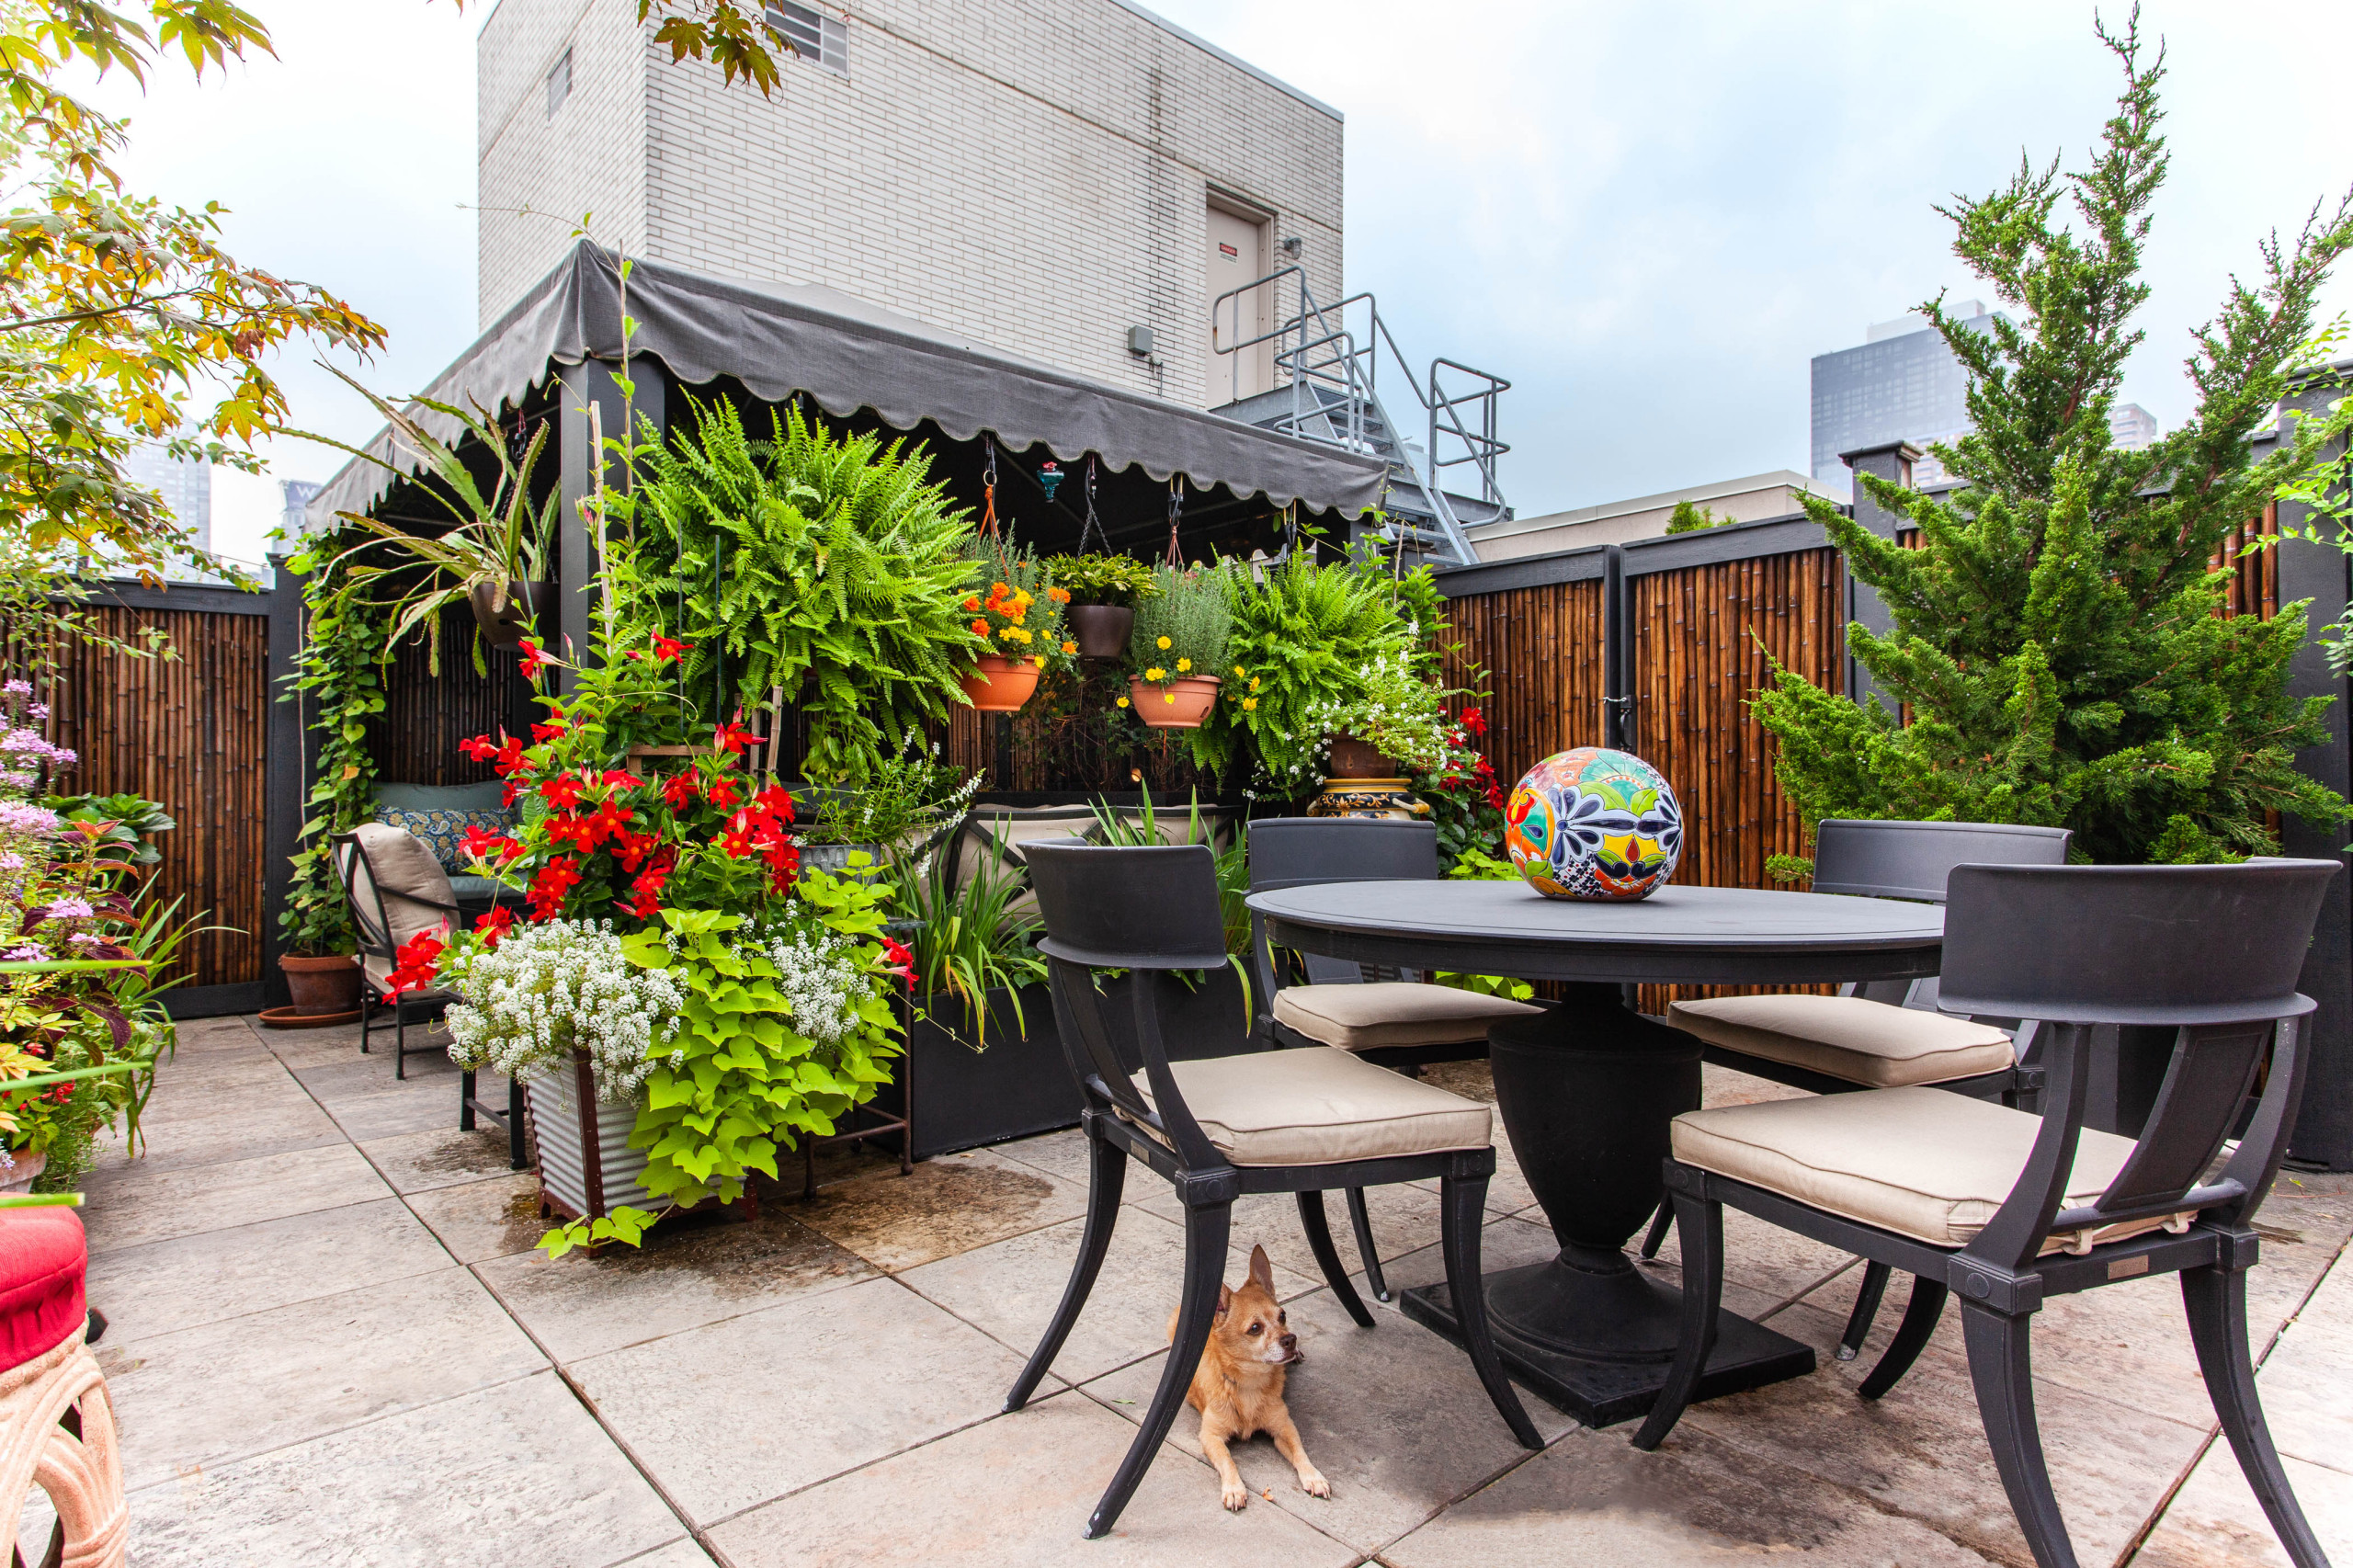 Hell's Kitchen Roof Garden